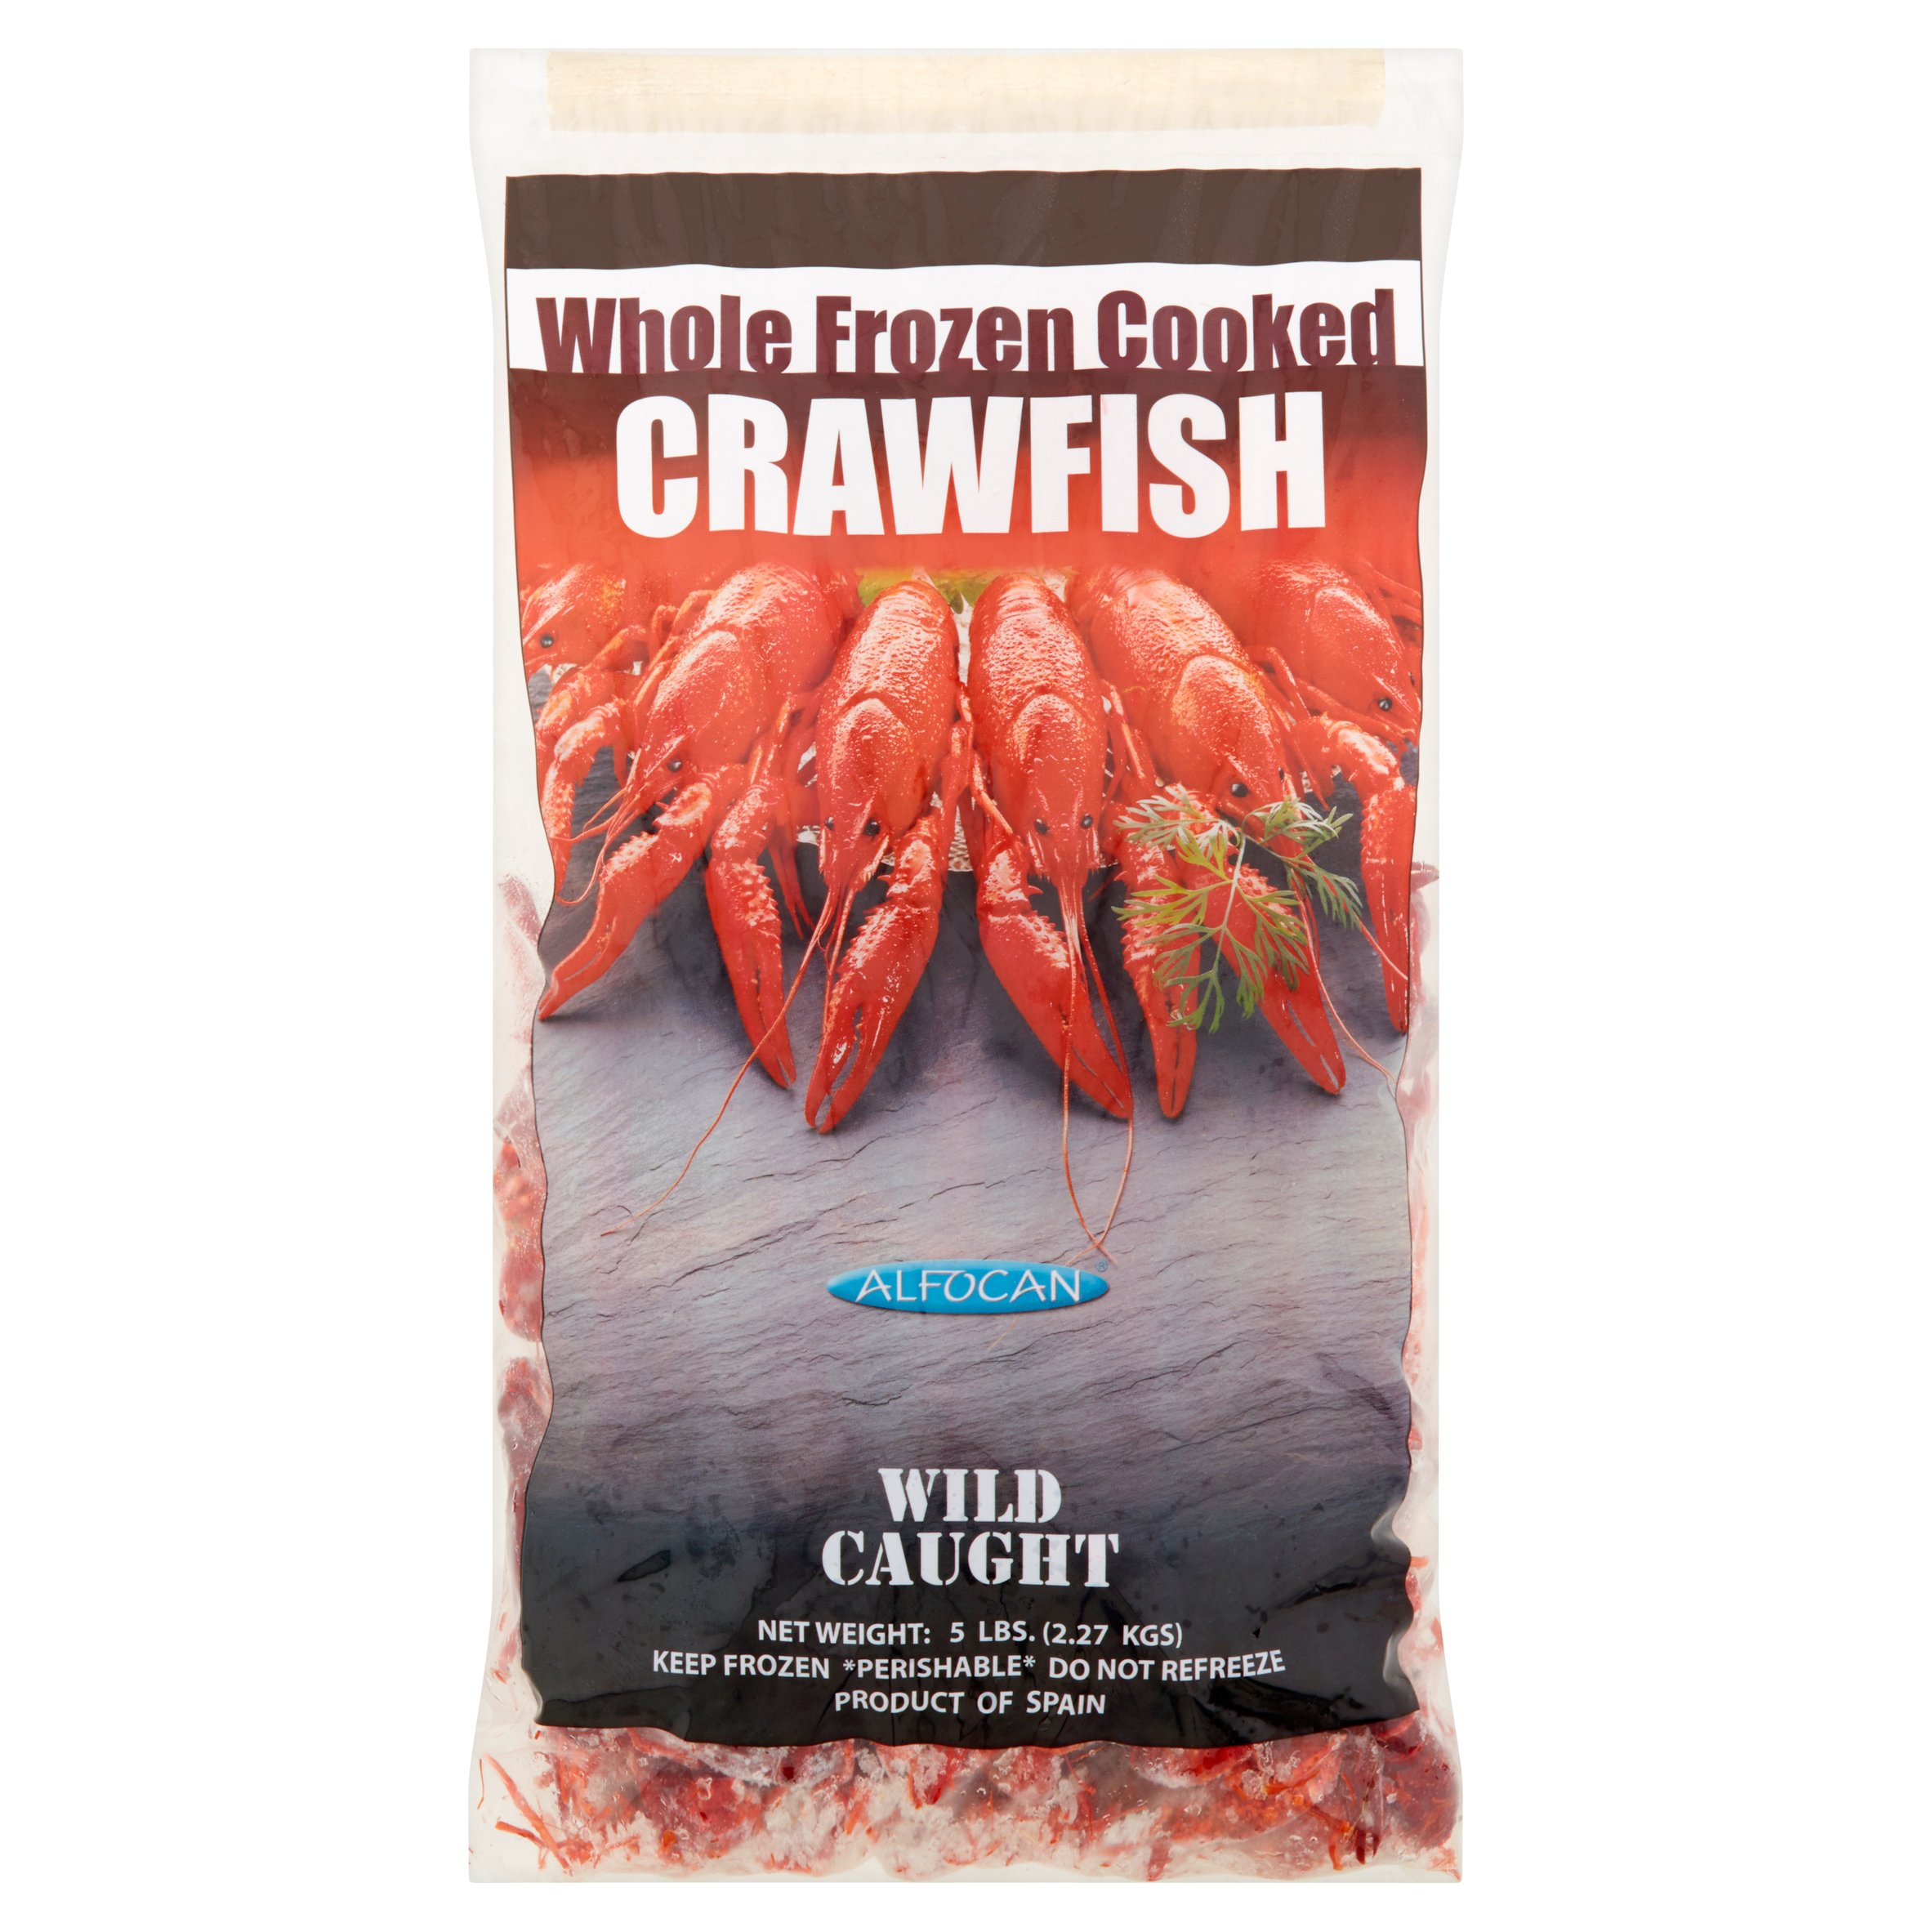 Alfocan Whole Frozen Cooked Crawfish, 5 lbs